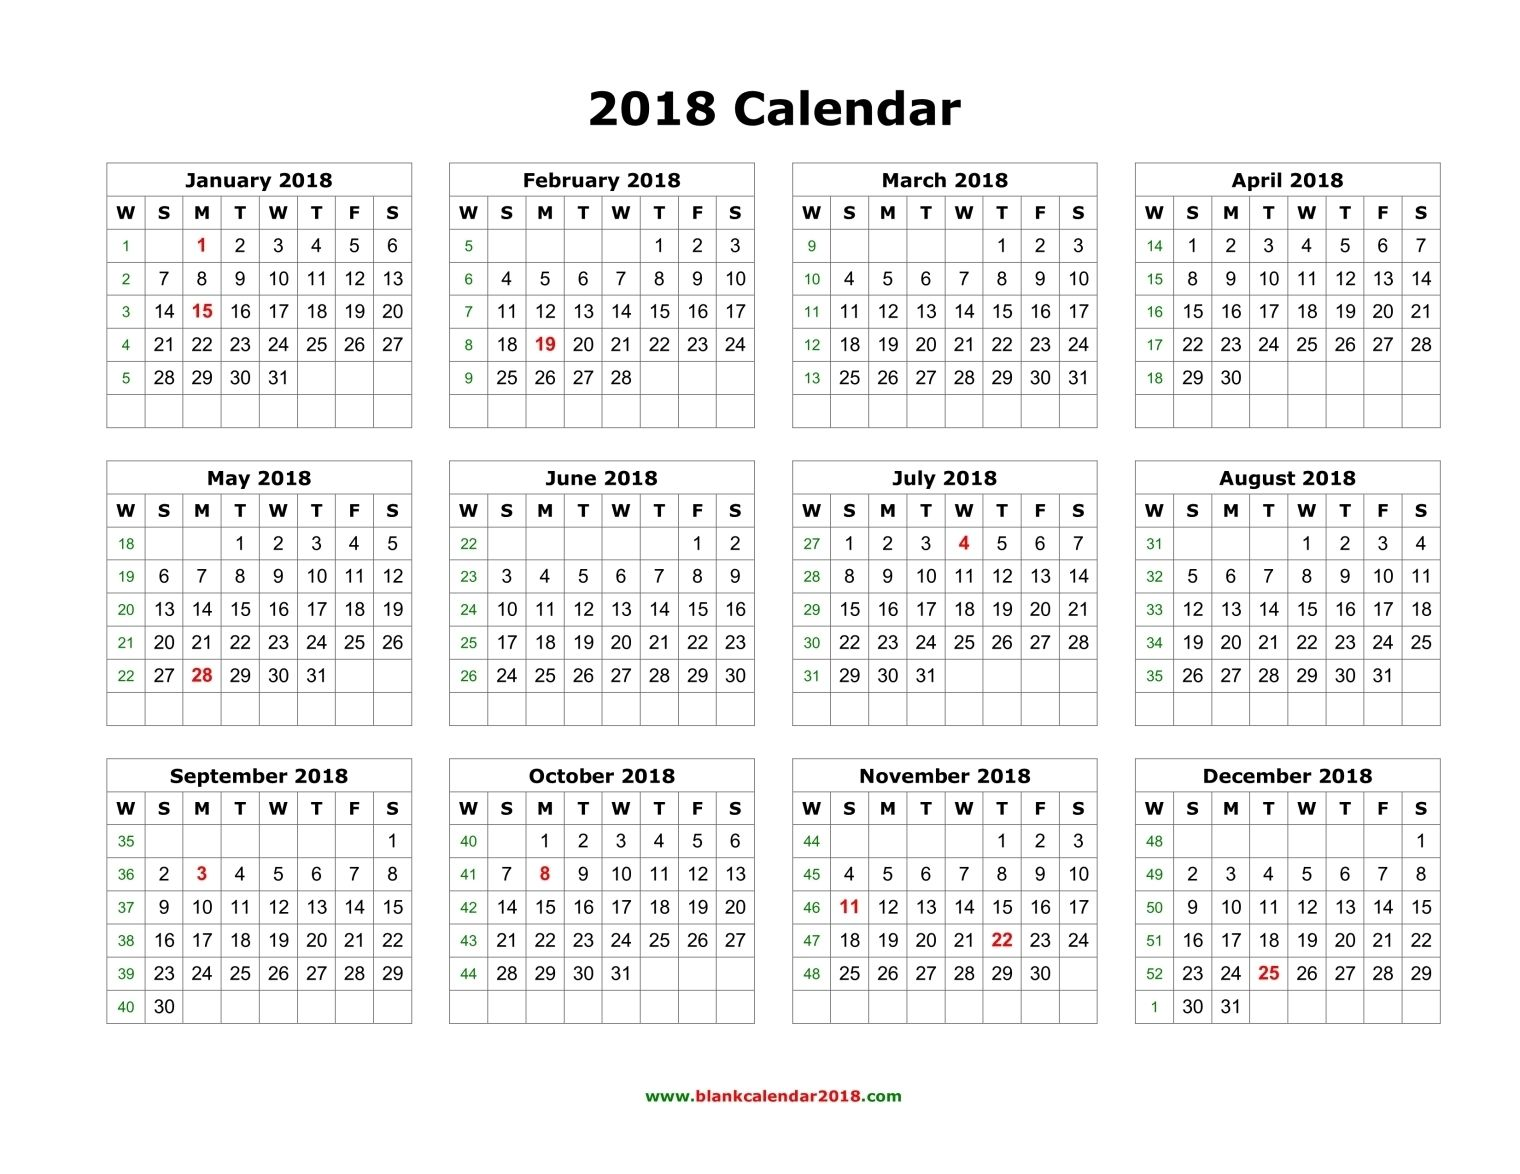 Pin by calendar printable on 2018 calendar in 2018 pinterest the calendars been jazzed up and i have added a few monthly glare loving these types of a great deal maxwellsz